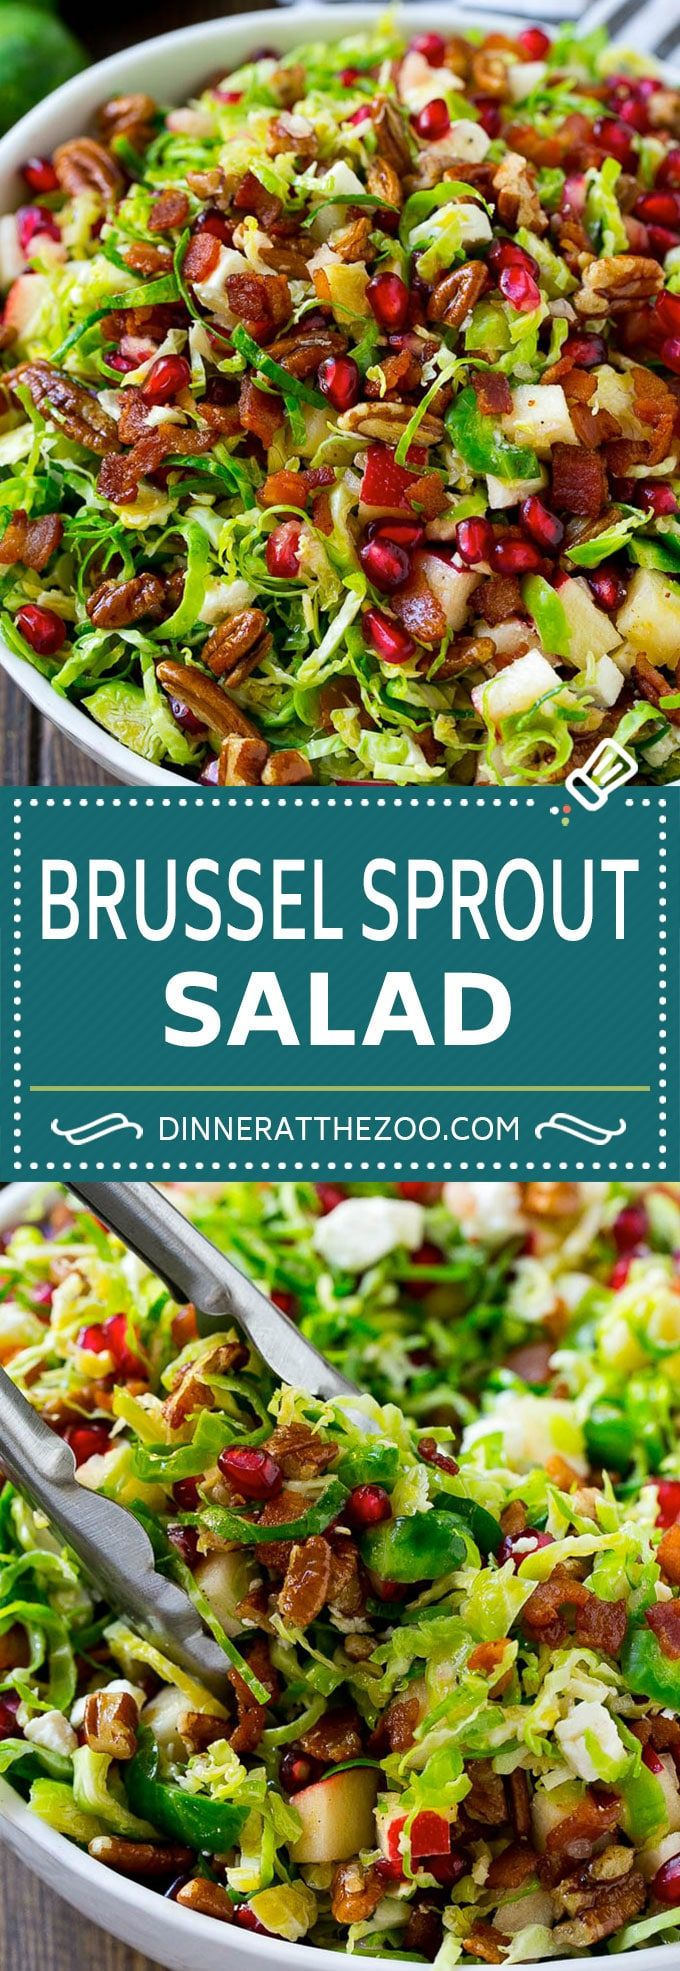 Brussels Sprout Salad - Dinner at the Zoo